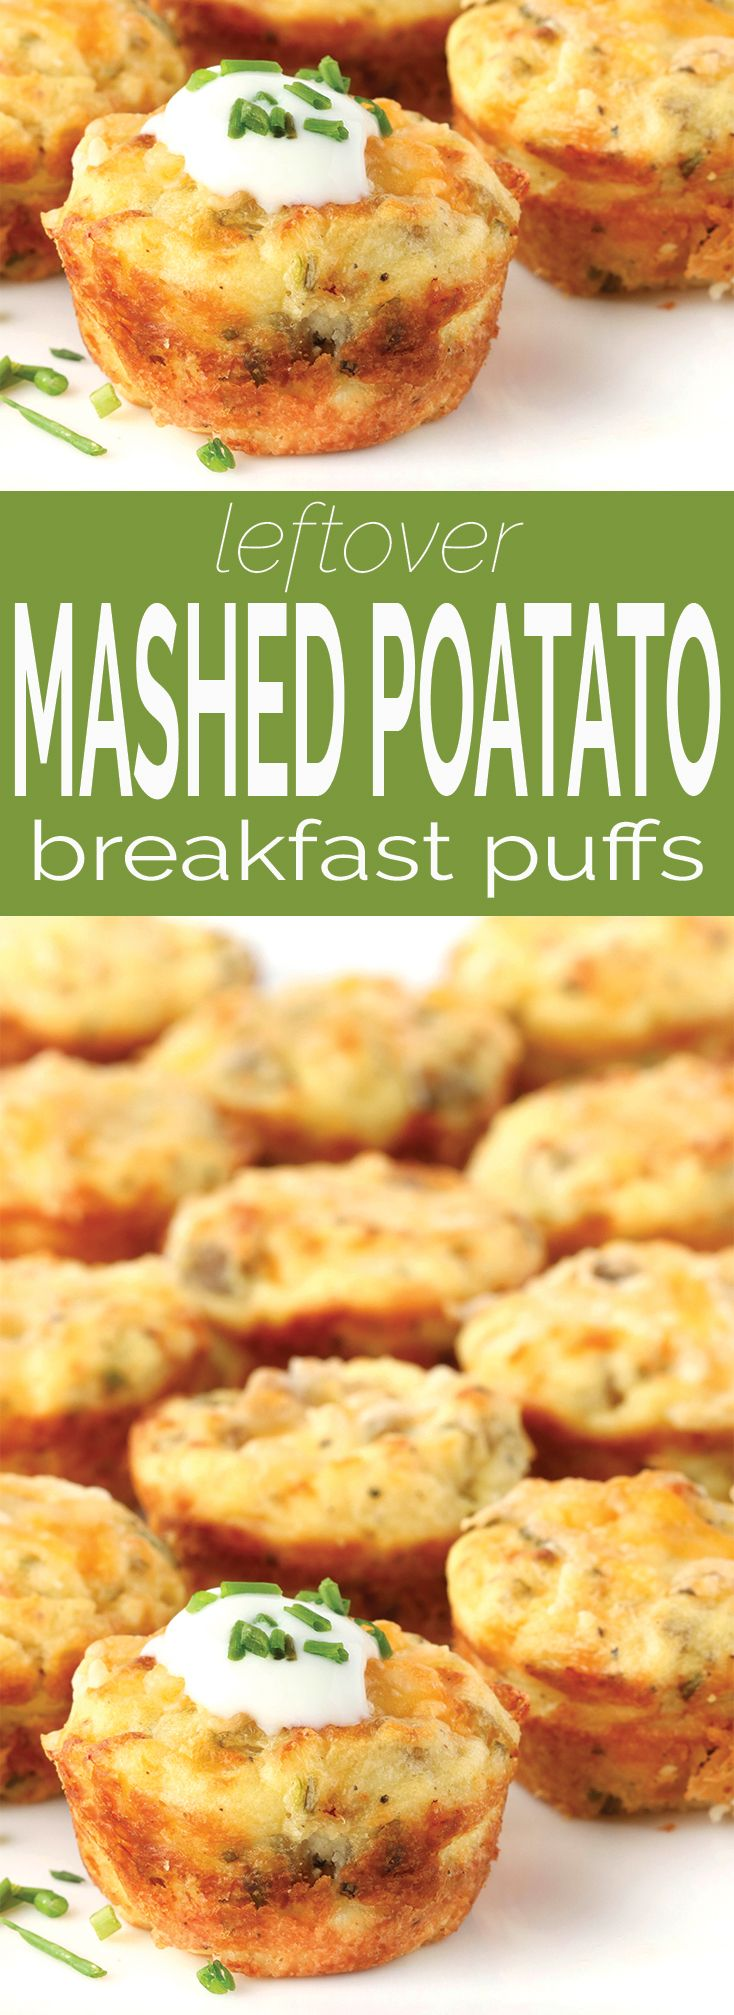 Left over mashed potatoes? Make these crispy, creamy, cheesy leftover mashed potato puffs for a quick grab n' go breakfast option. via @Simply Sissom